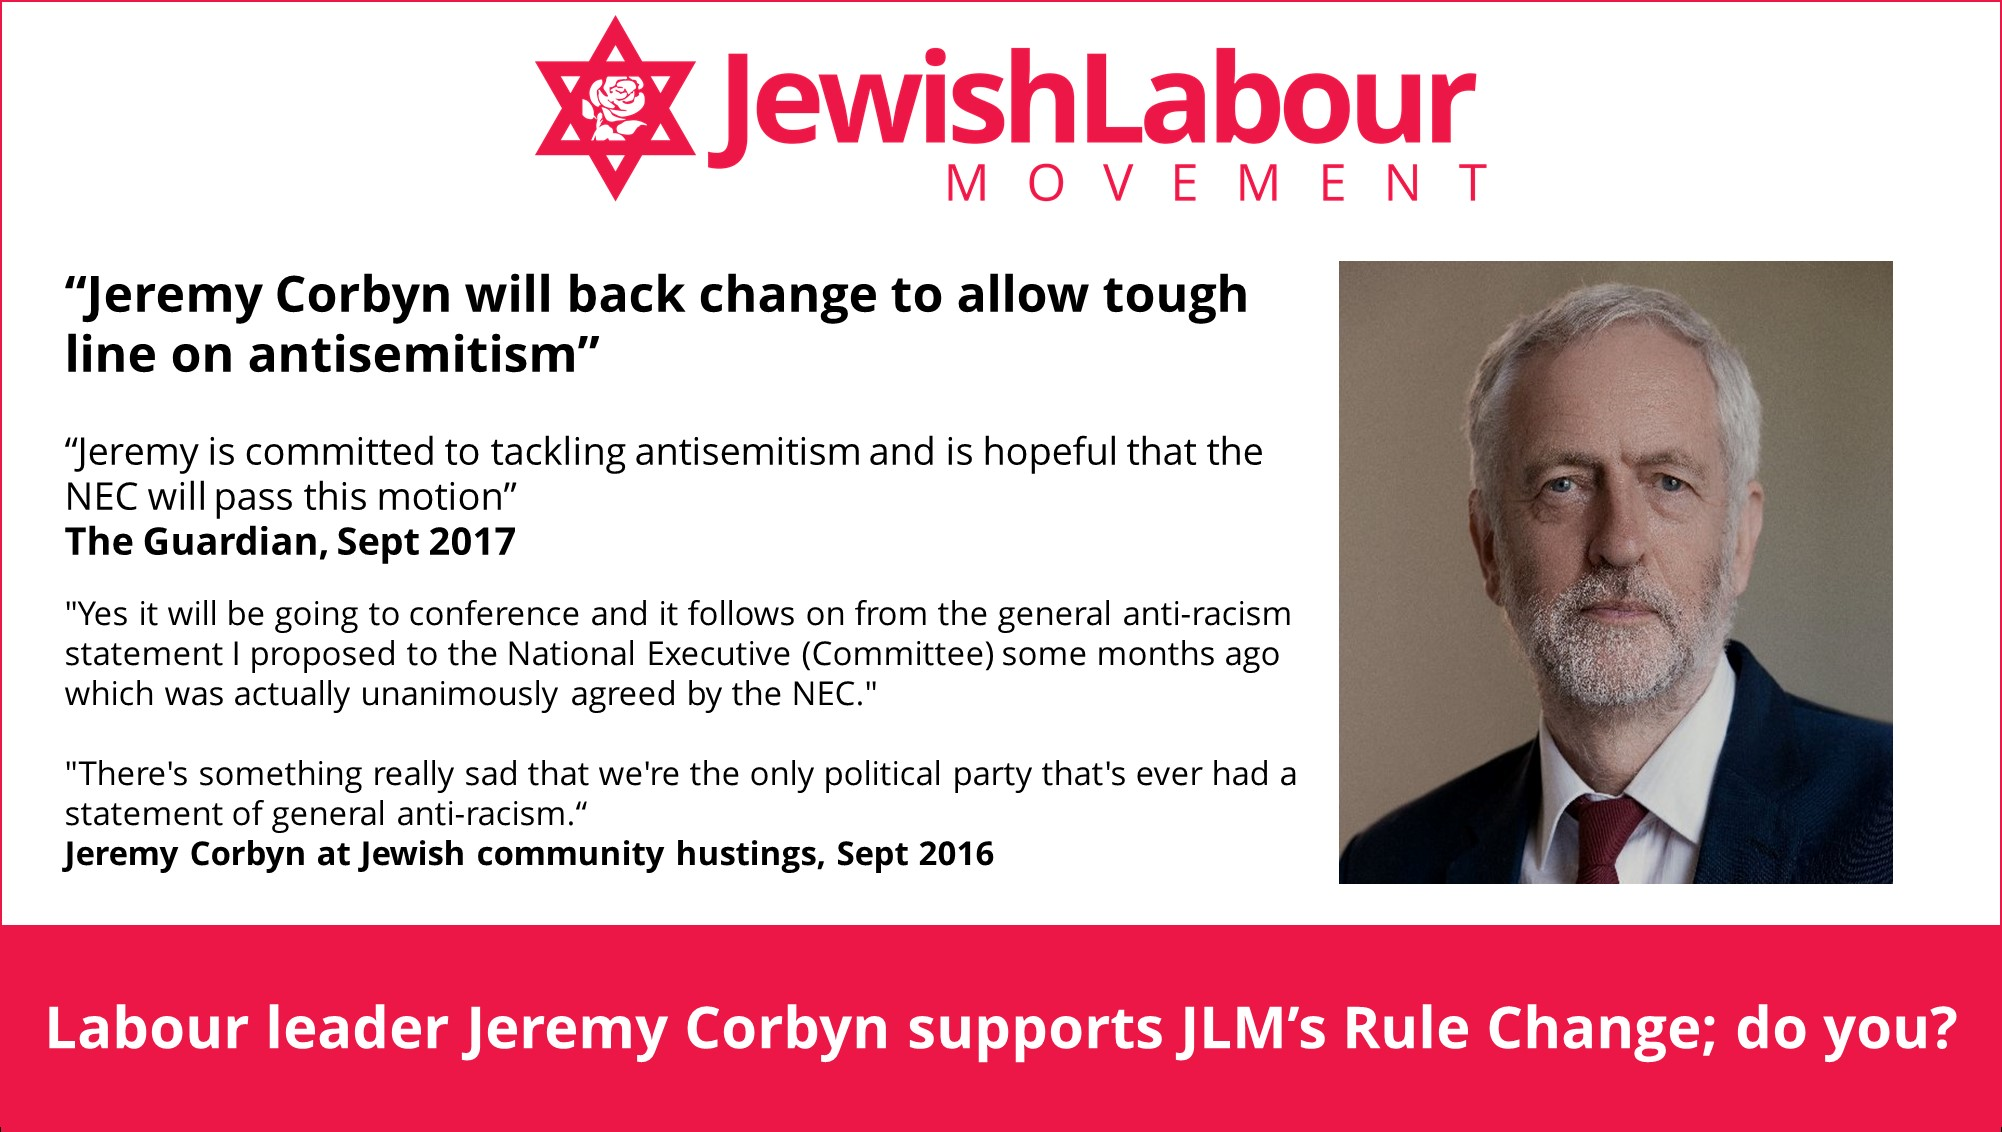 Corbyn_supports_rule_change.jpg